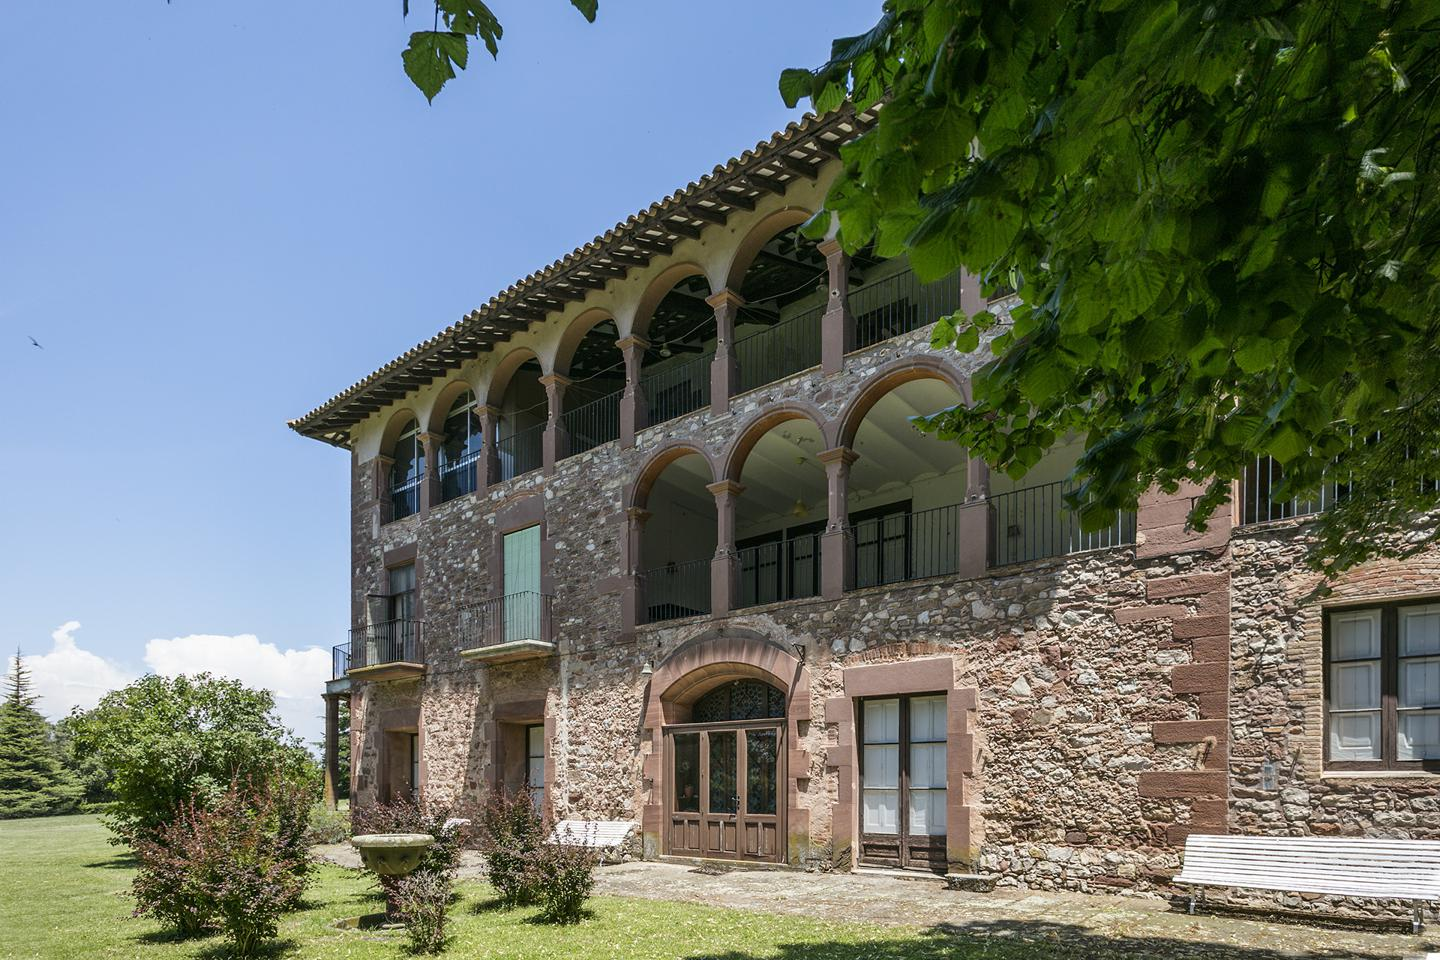 The estate is located in the Osona region of Spain and comprises the old 17th-century manor and the former health clinic.